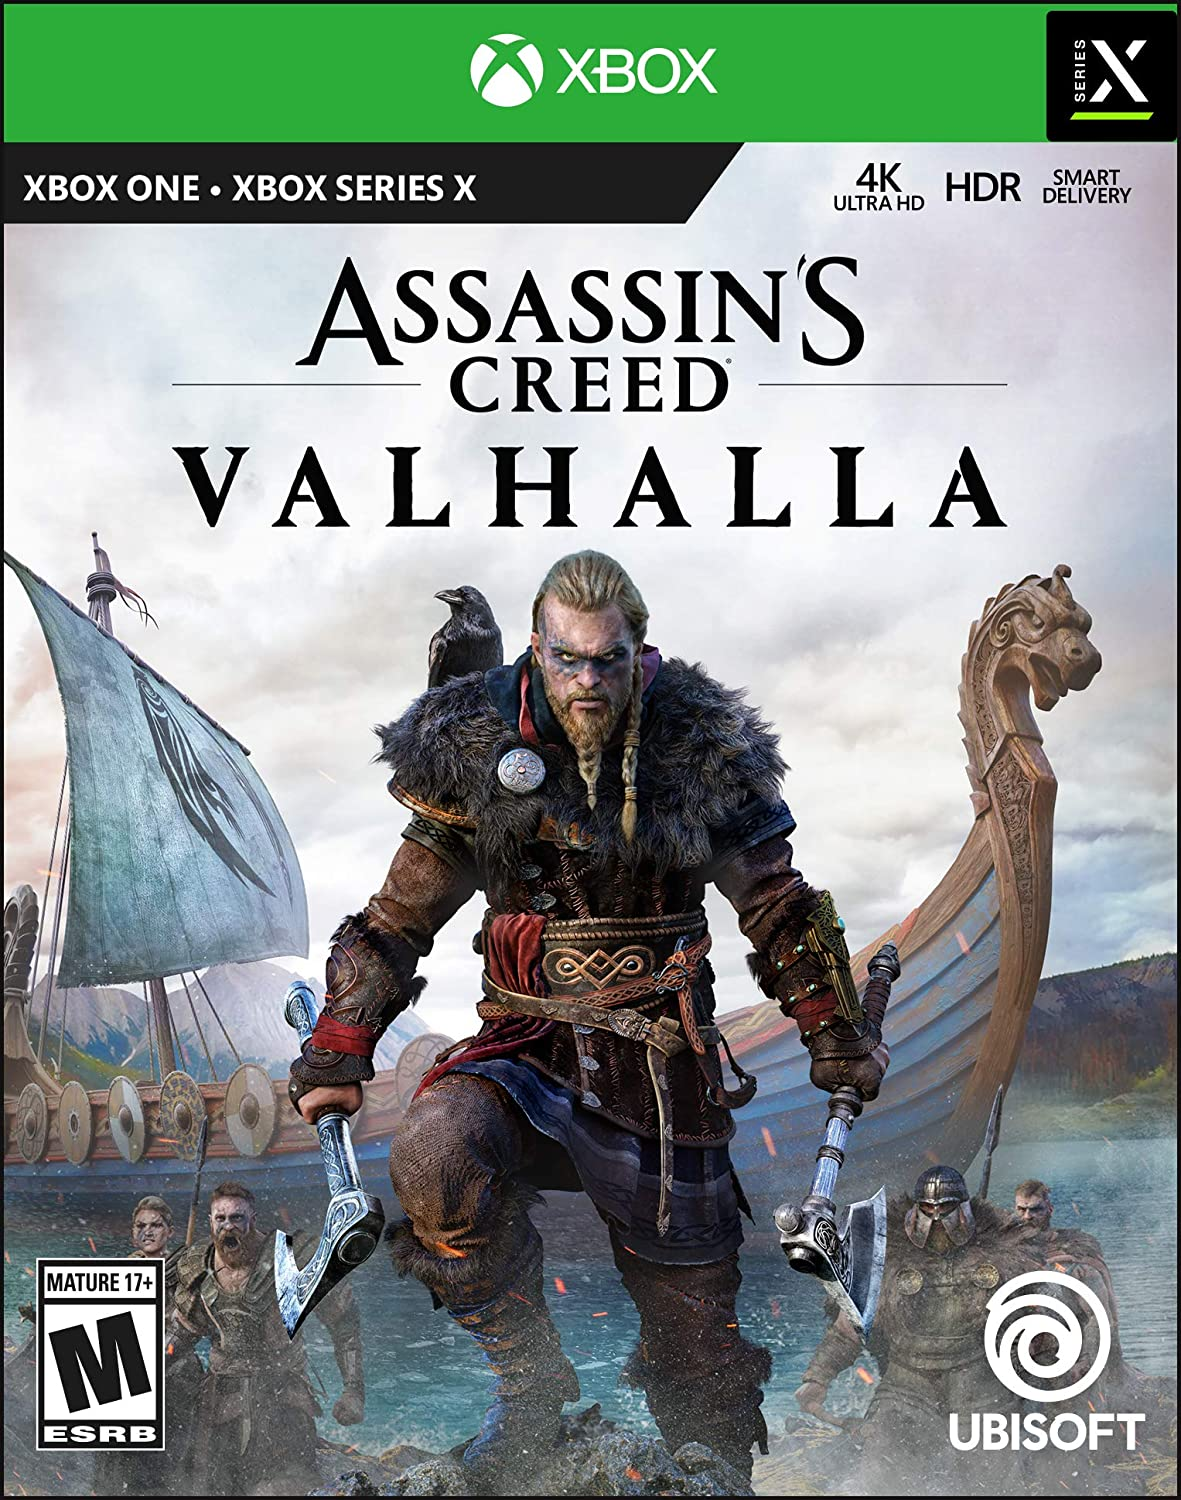 Assassin's Creed Valhalla Xbox Series X S xbox one standard